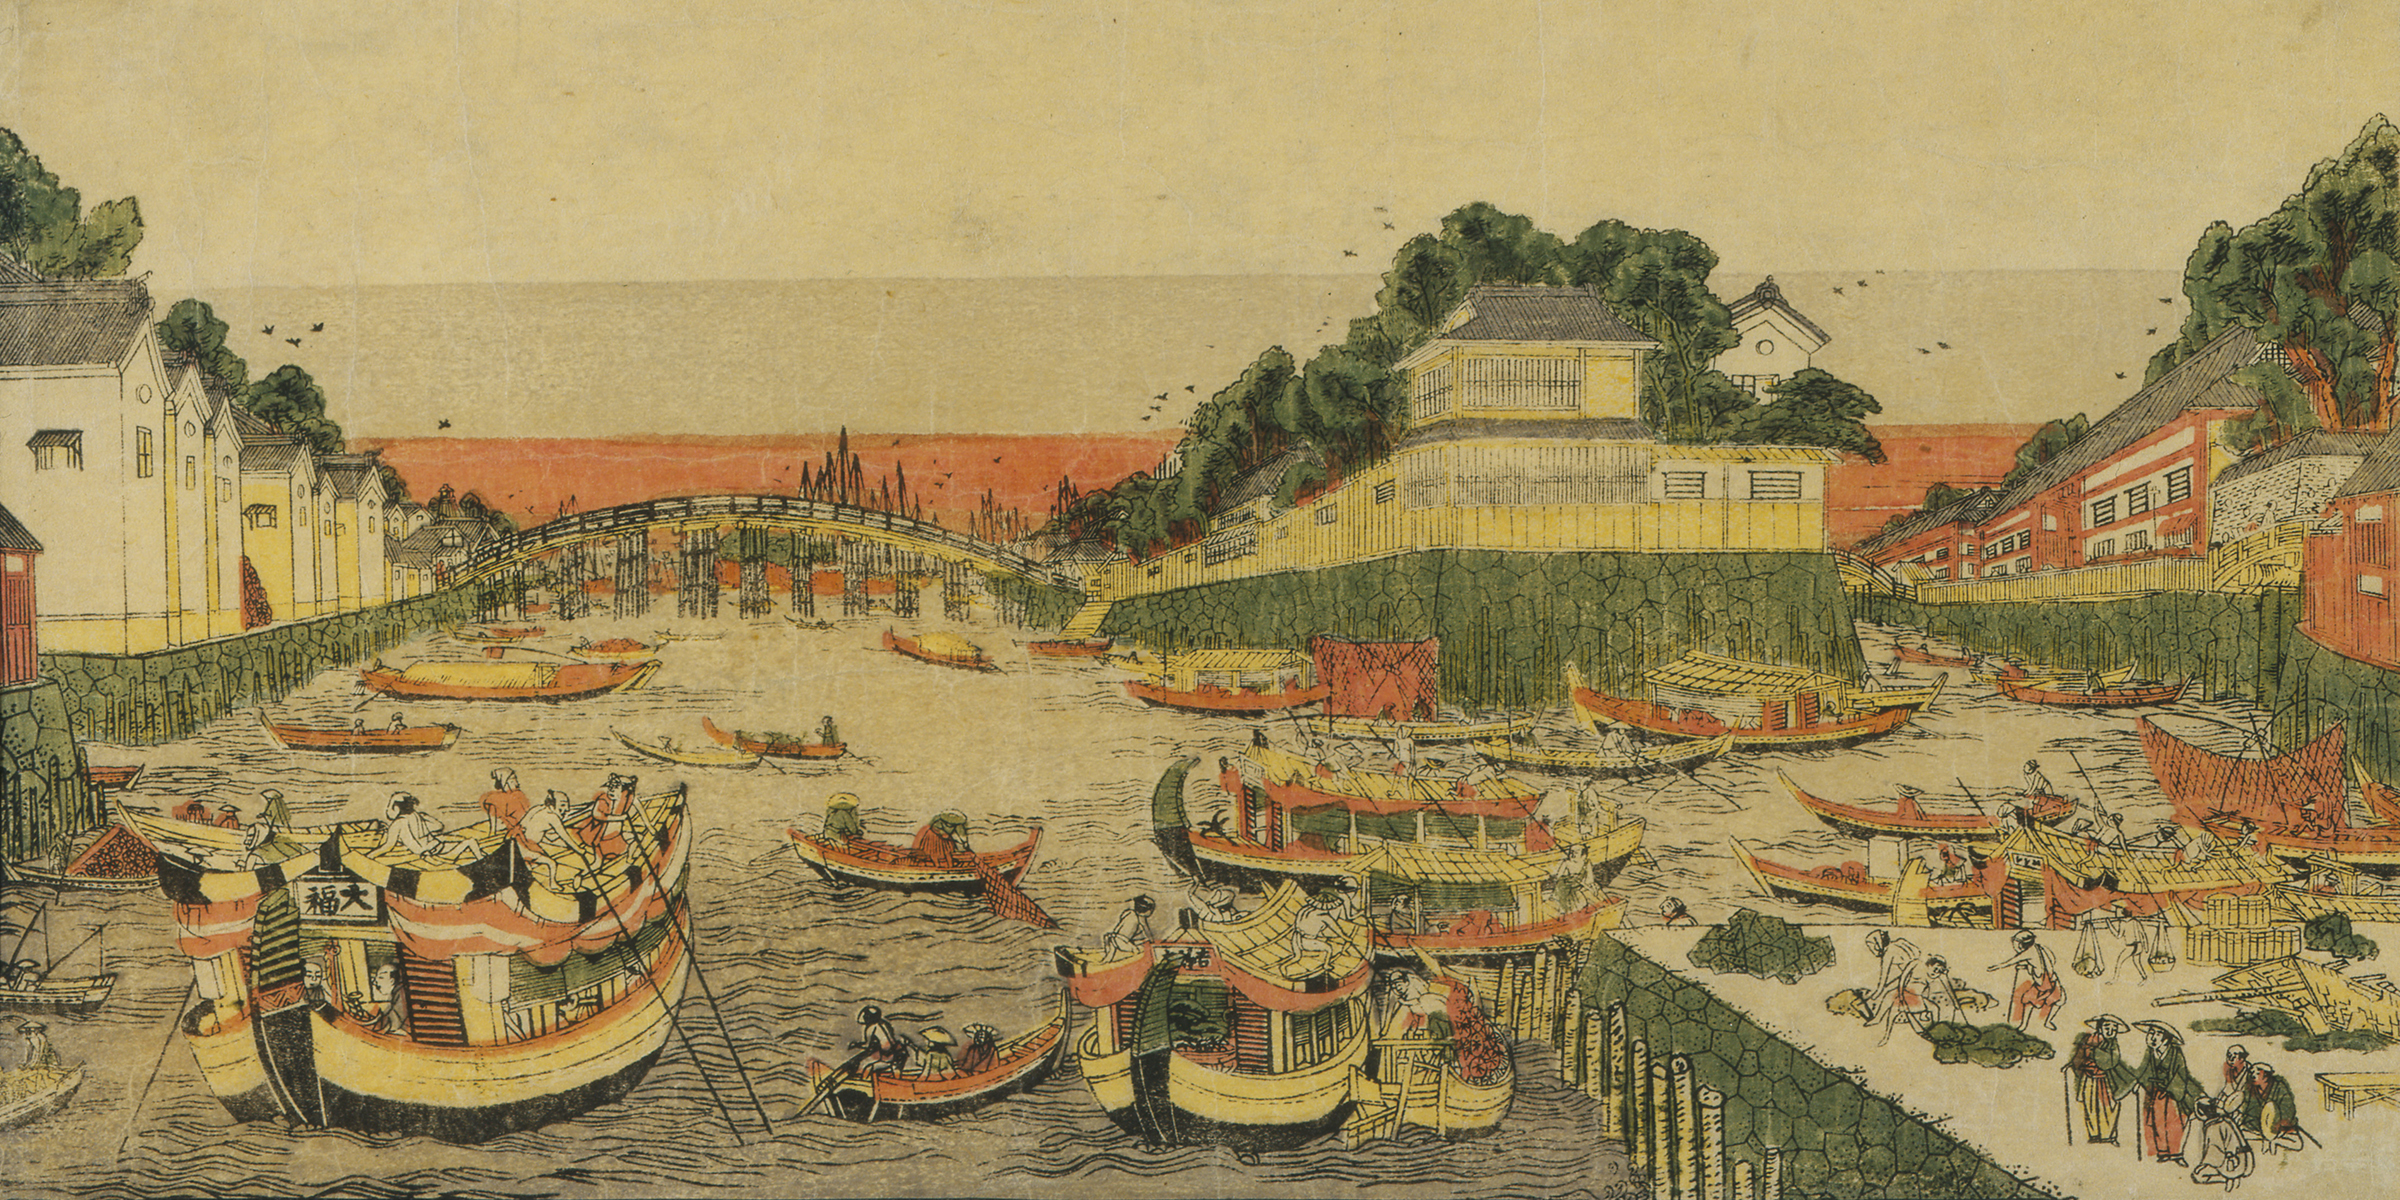 Boats on a River, Being Loaded and Unloaded, by Toyoharu, eighteenth century. © Newark Museum / Art Resource, NY.